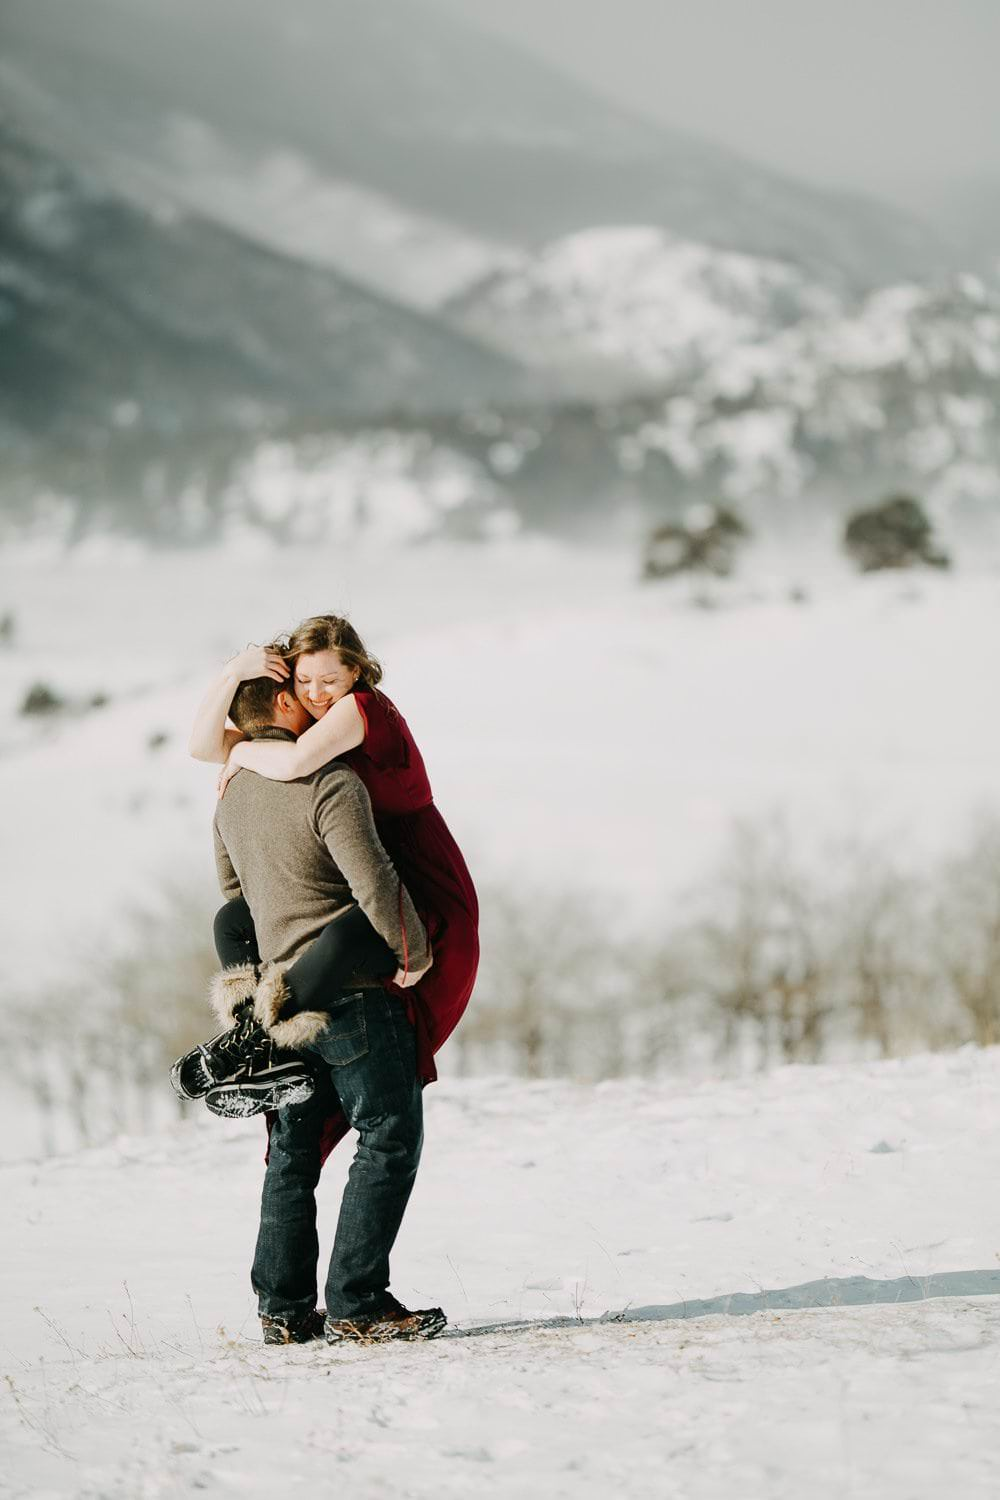 WINTER ROCKY MOUNTAIN NATIONAL PARK ADVENTUROUS ENGAGEMENT|ESTES PARK ENGAGEMENT|COLORADO MOUNTAIN ADVENTUROUS ELOPEMENT PHOTOGRAPHER INTIMATE WEDDINGS AND ADVENTUROUS ELOPEMENTS PHOTOGRAPHER | JUSTYNA E BUTLER PHOTOGRAPHY|ROCKY MOUNTAIN NATIONAL PARK ELOPEMENT PHOTOGRAPHER| COLORADO MOUNTAIN ADVENTUROUS ELOPEMENT PHOTOGRAPHER|CLIFF + AMY PART 1